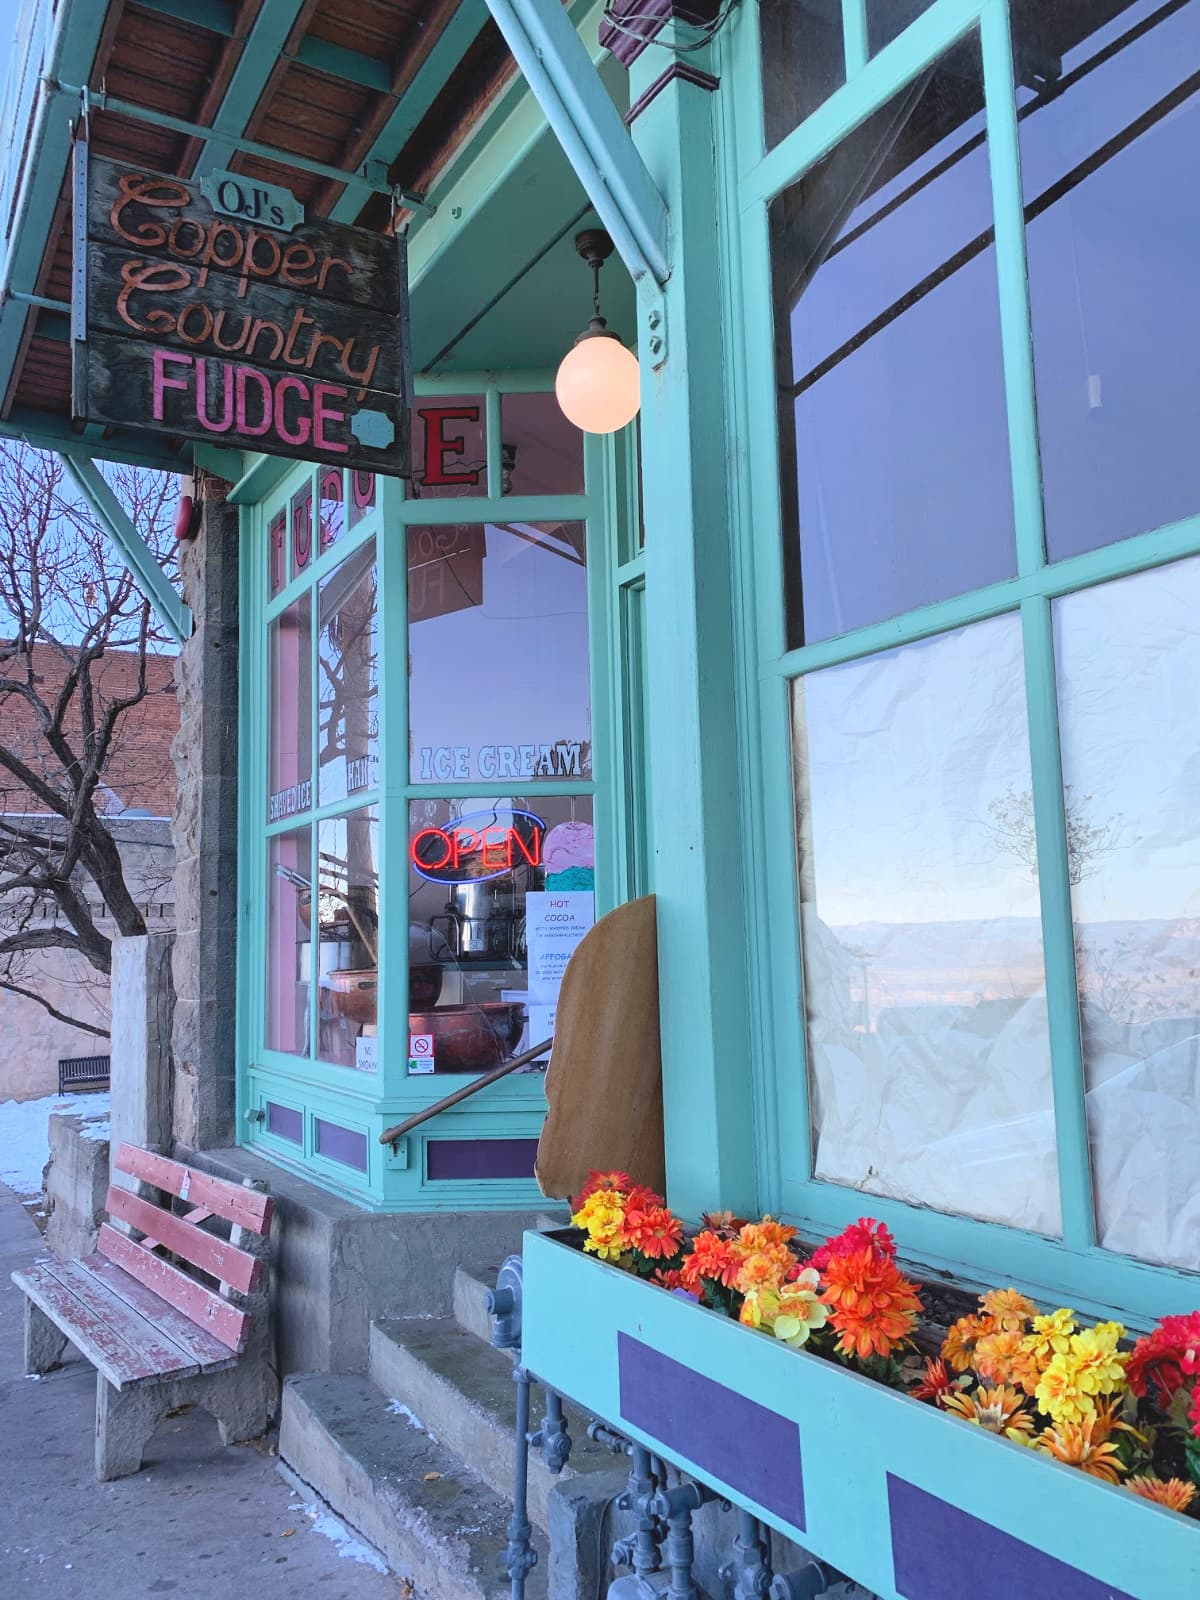 OJ's Copper Country Fudge is a favorite stop for families in Jerome, AZ